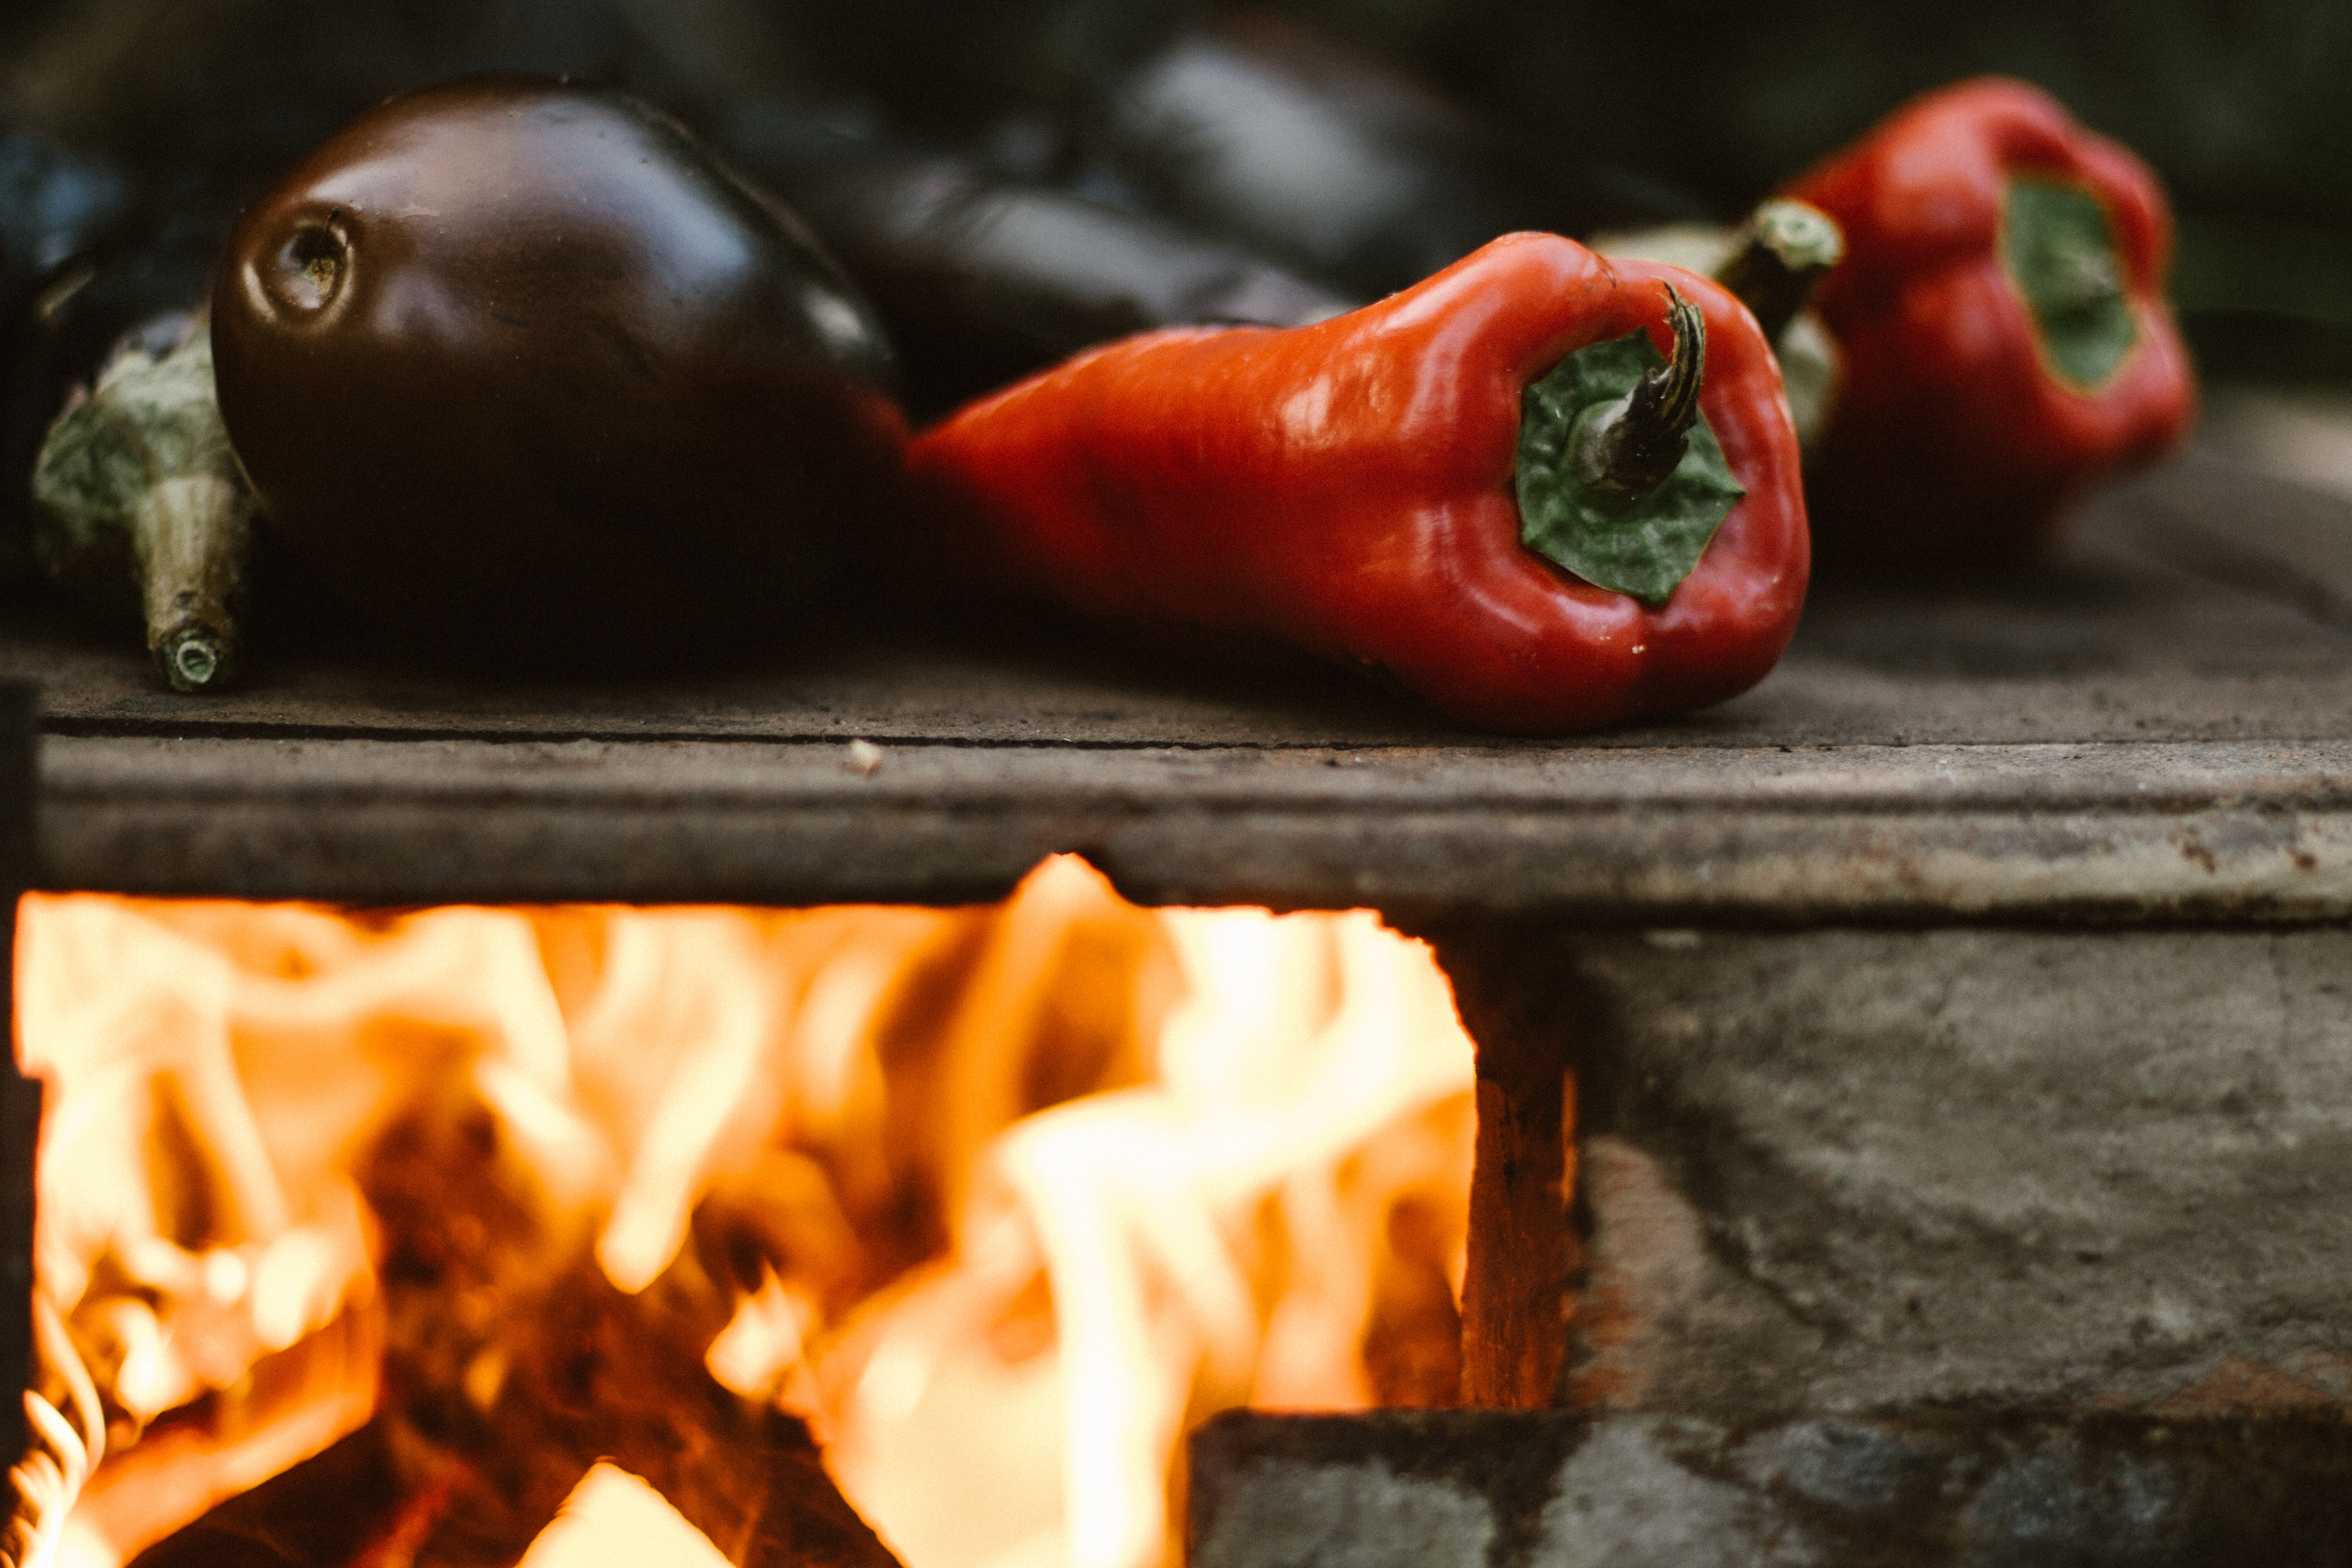 Eggplants, peppers, and vegetables roasting over an open fire outside